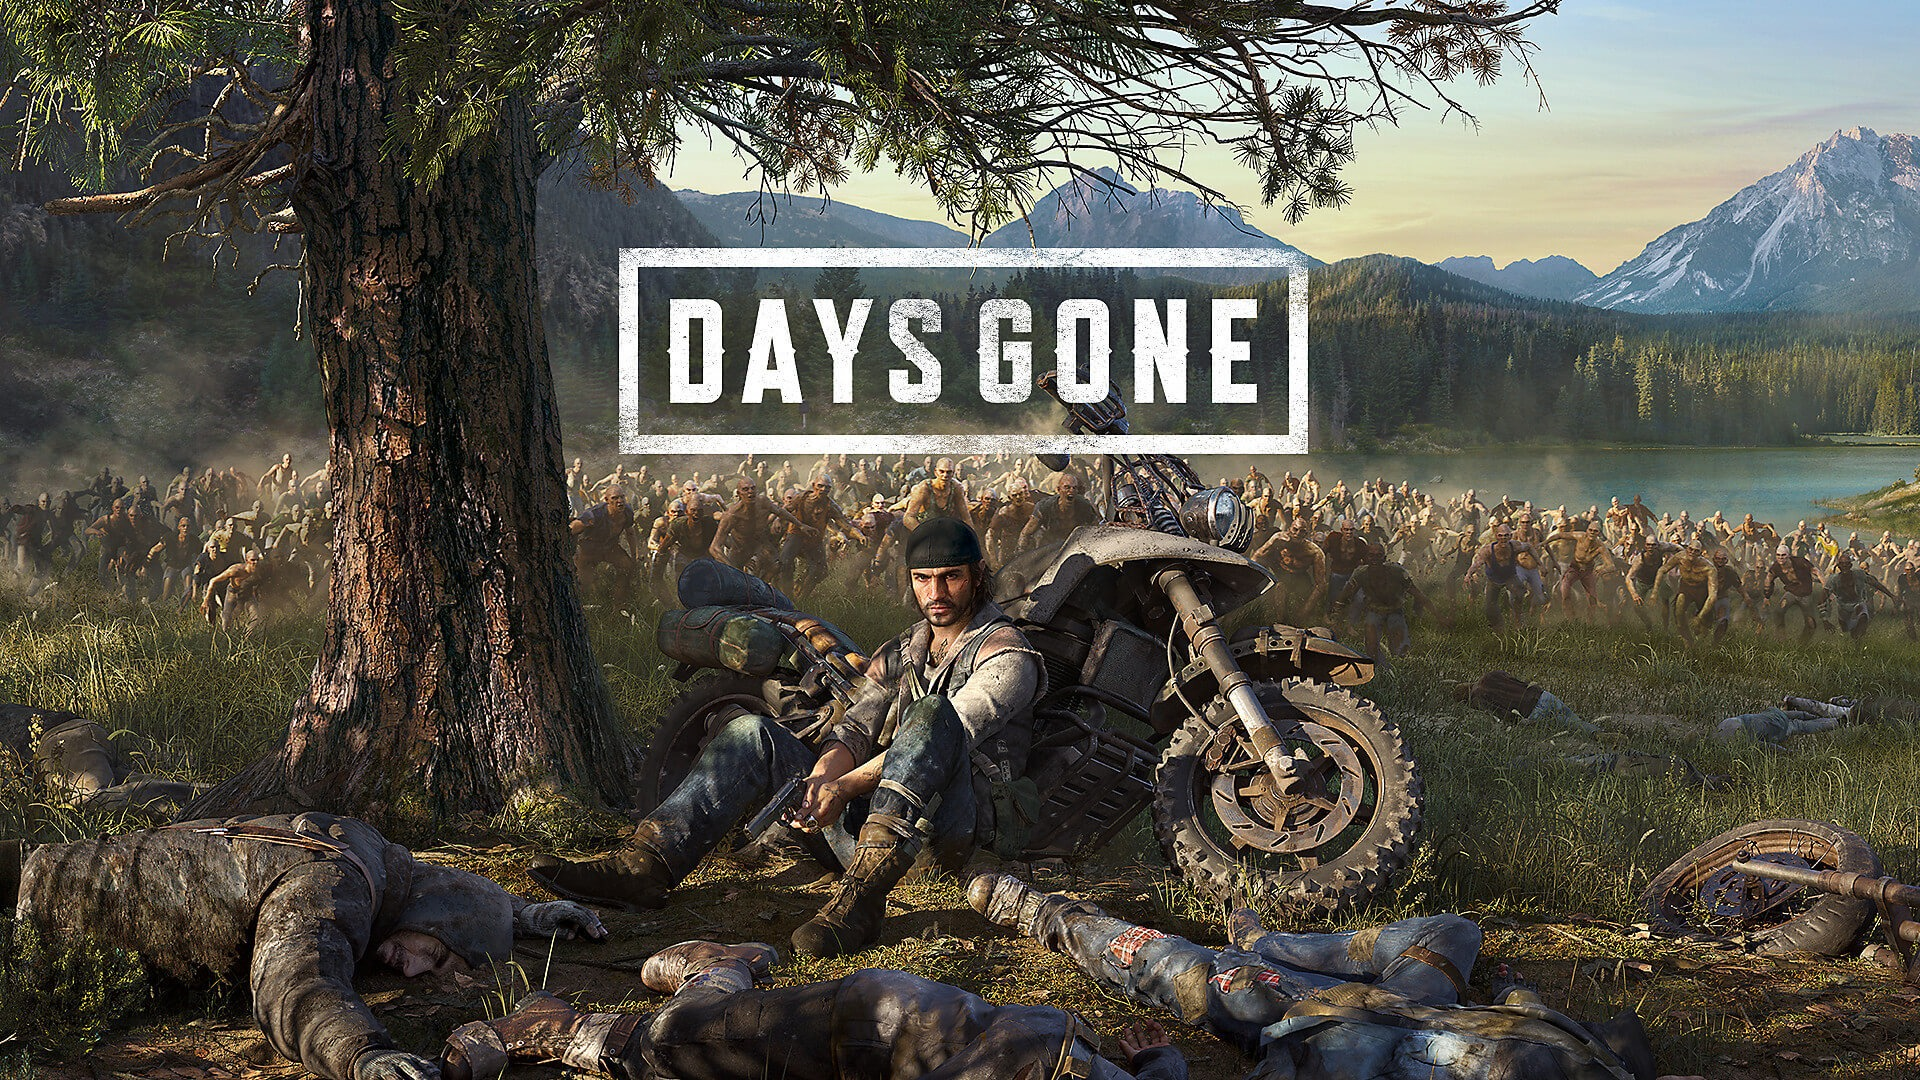 Days Gone releases on the PC on May 18th first PC gameplay